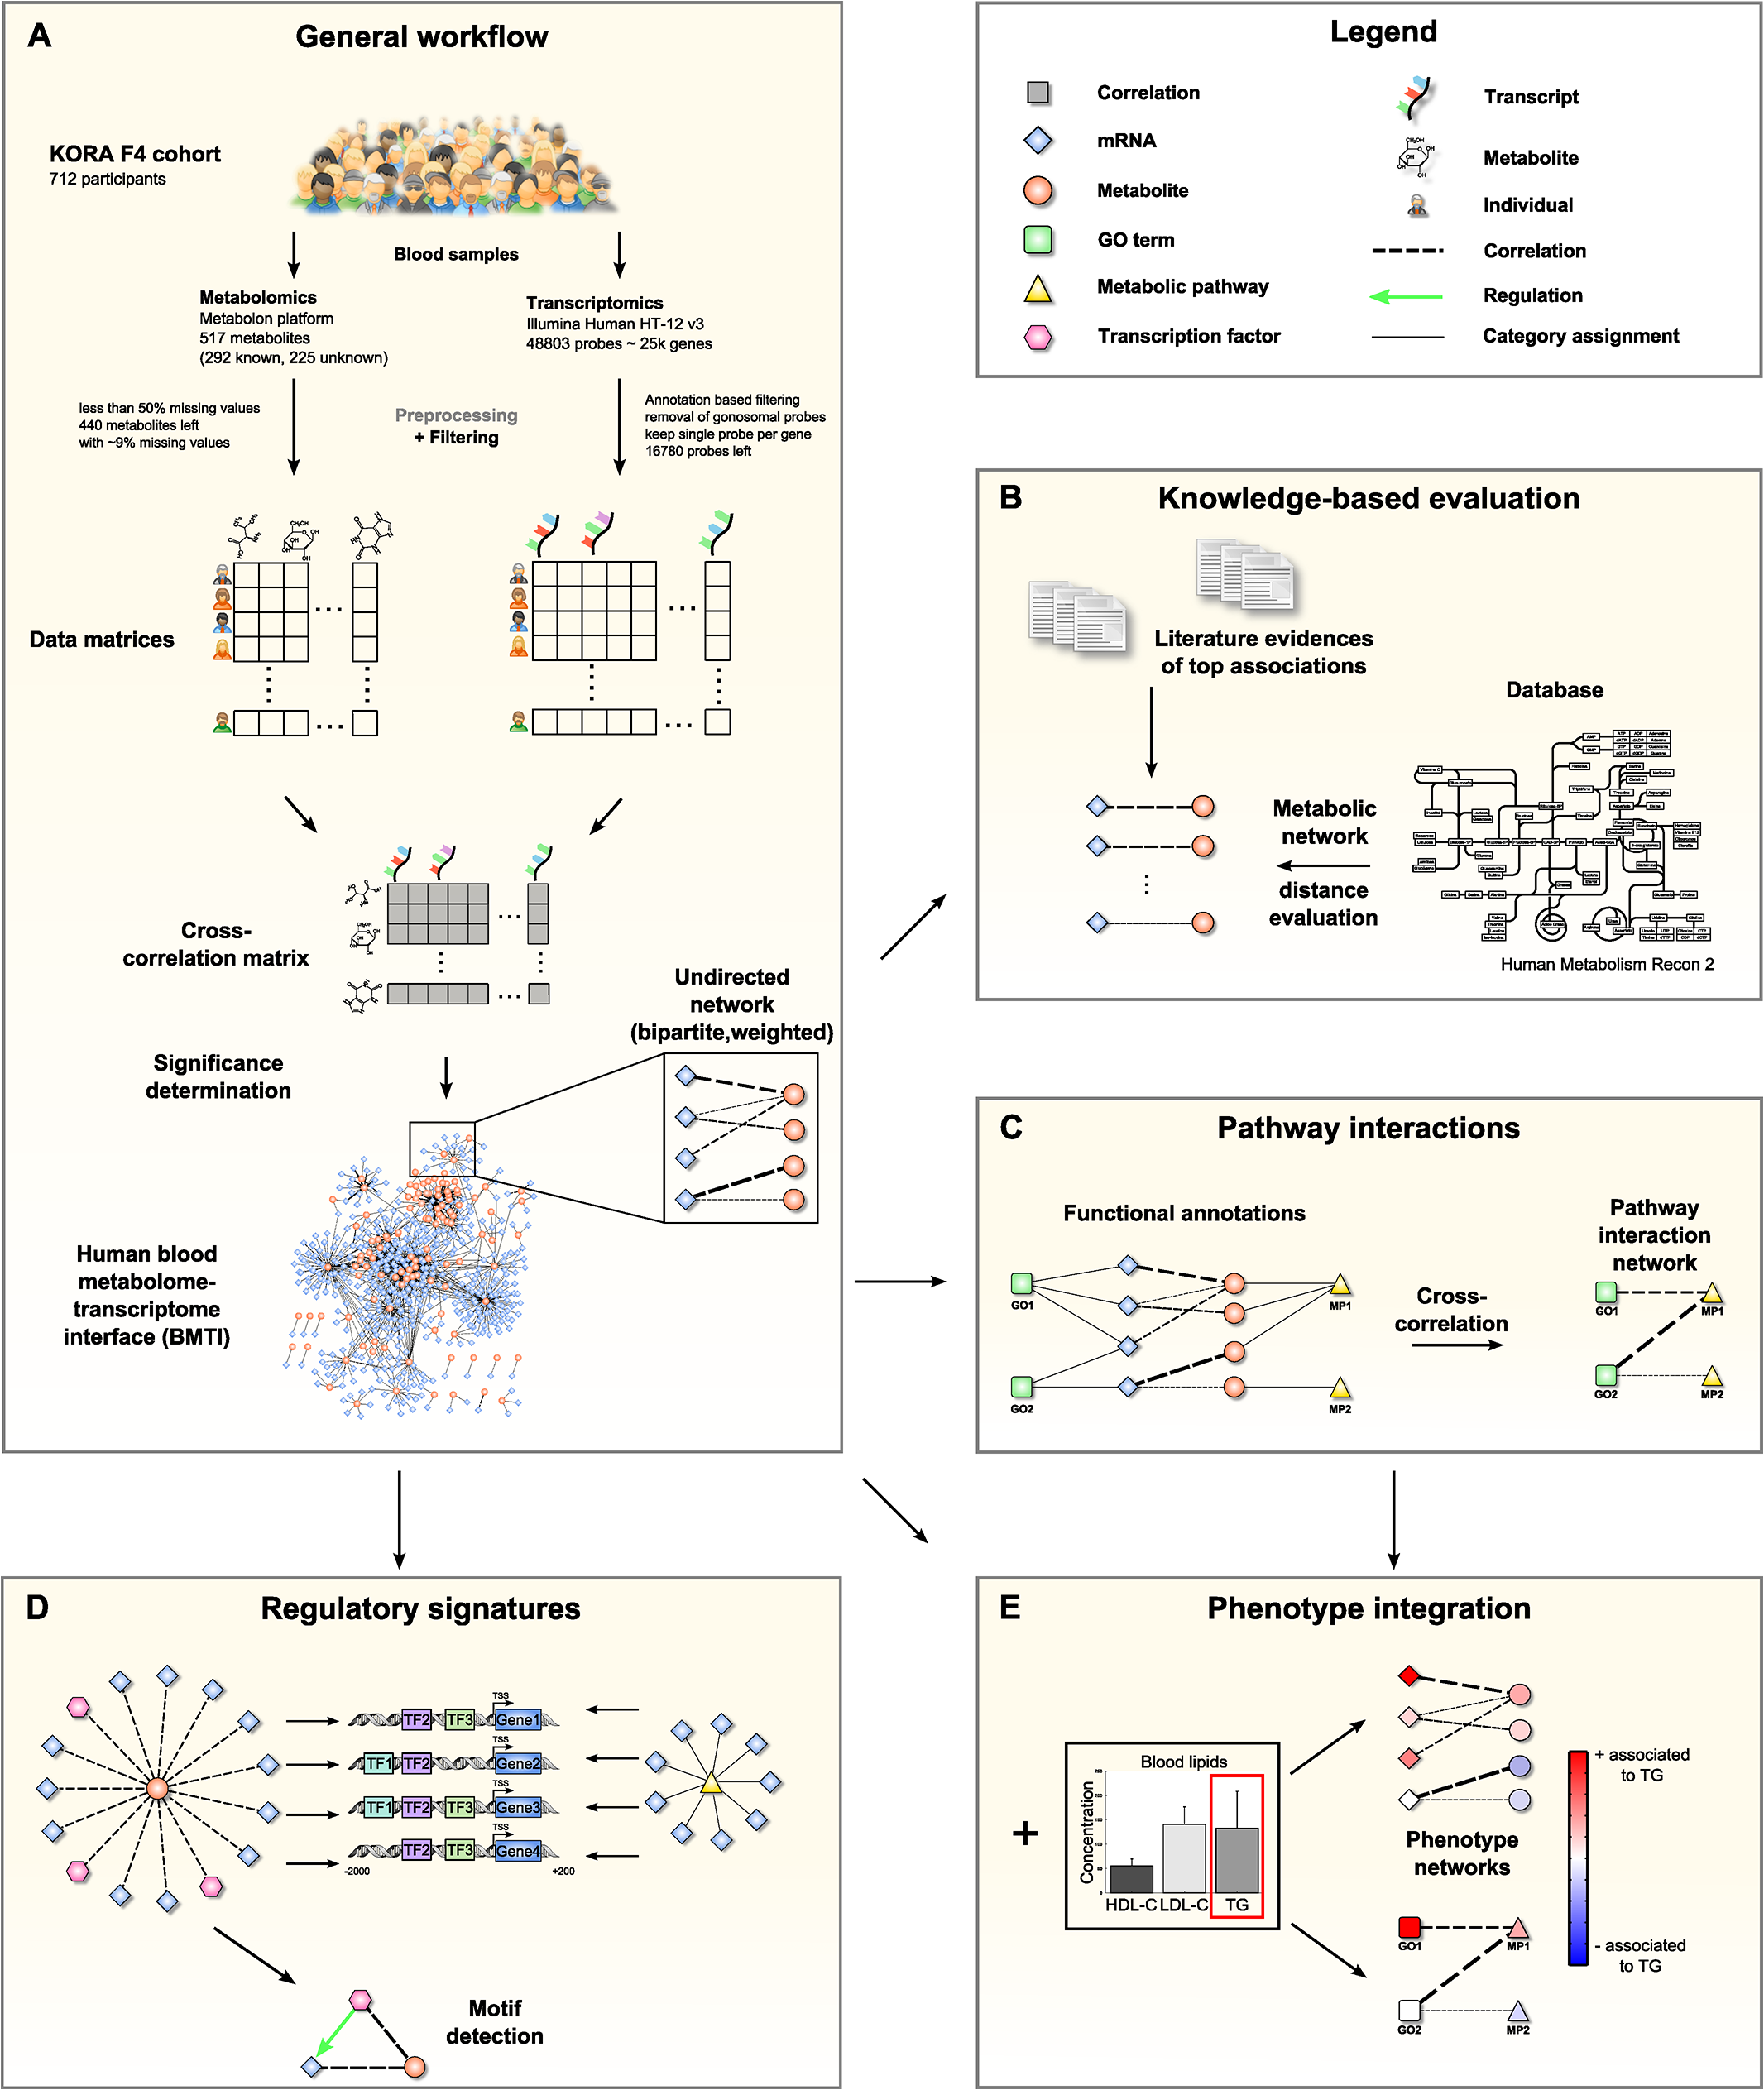 Data integration and network analysis workflow for the blood metabolome-transcriptome interface (BMTI).